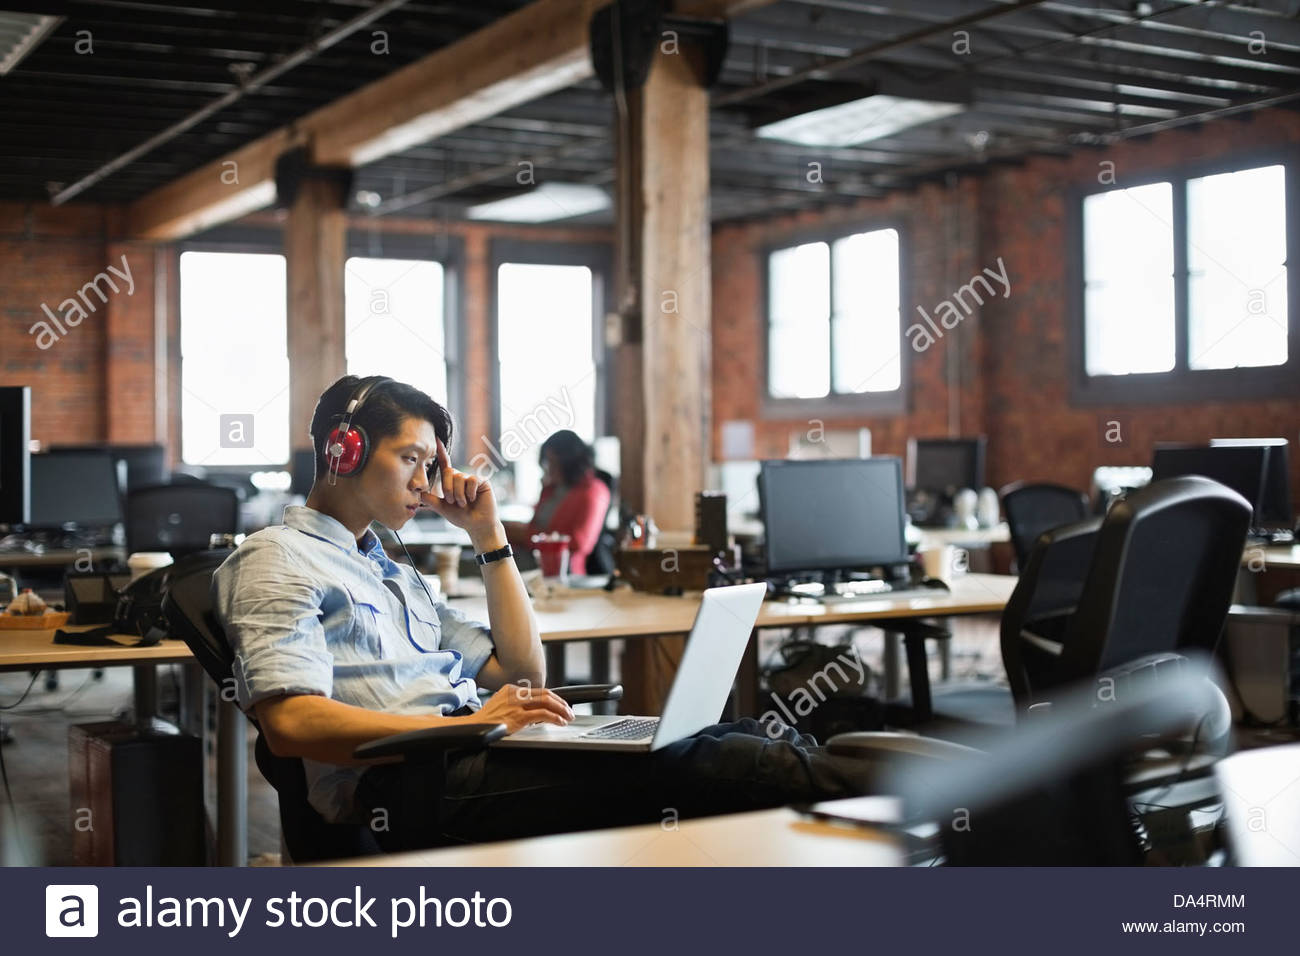 Entrepreneur working on laptop in creative office space - Stock Image